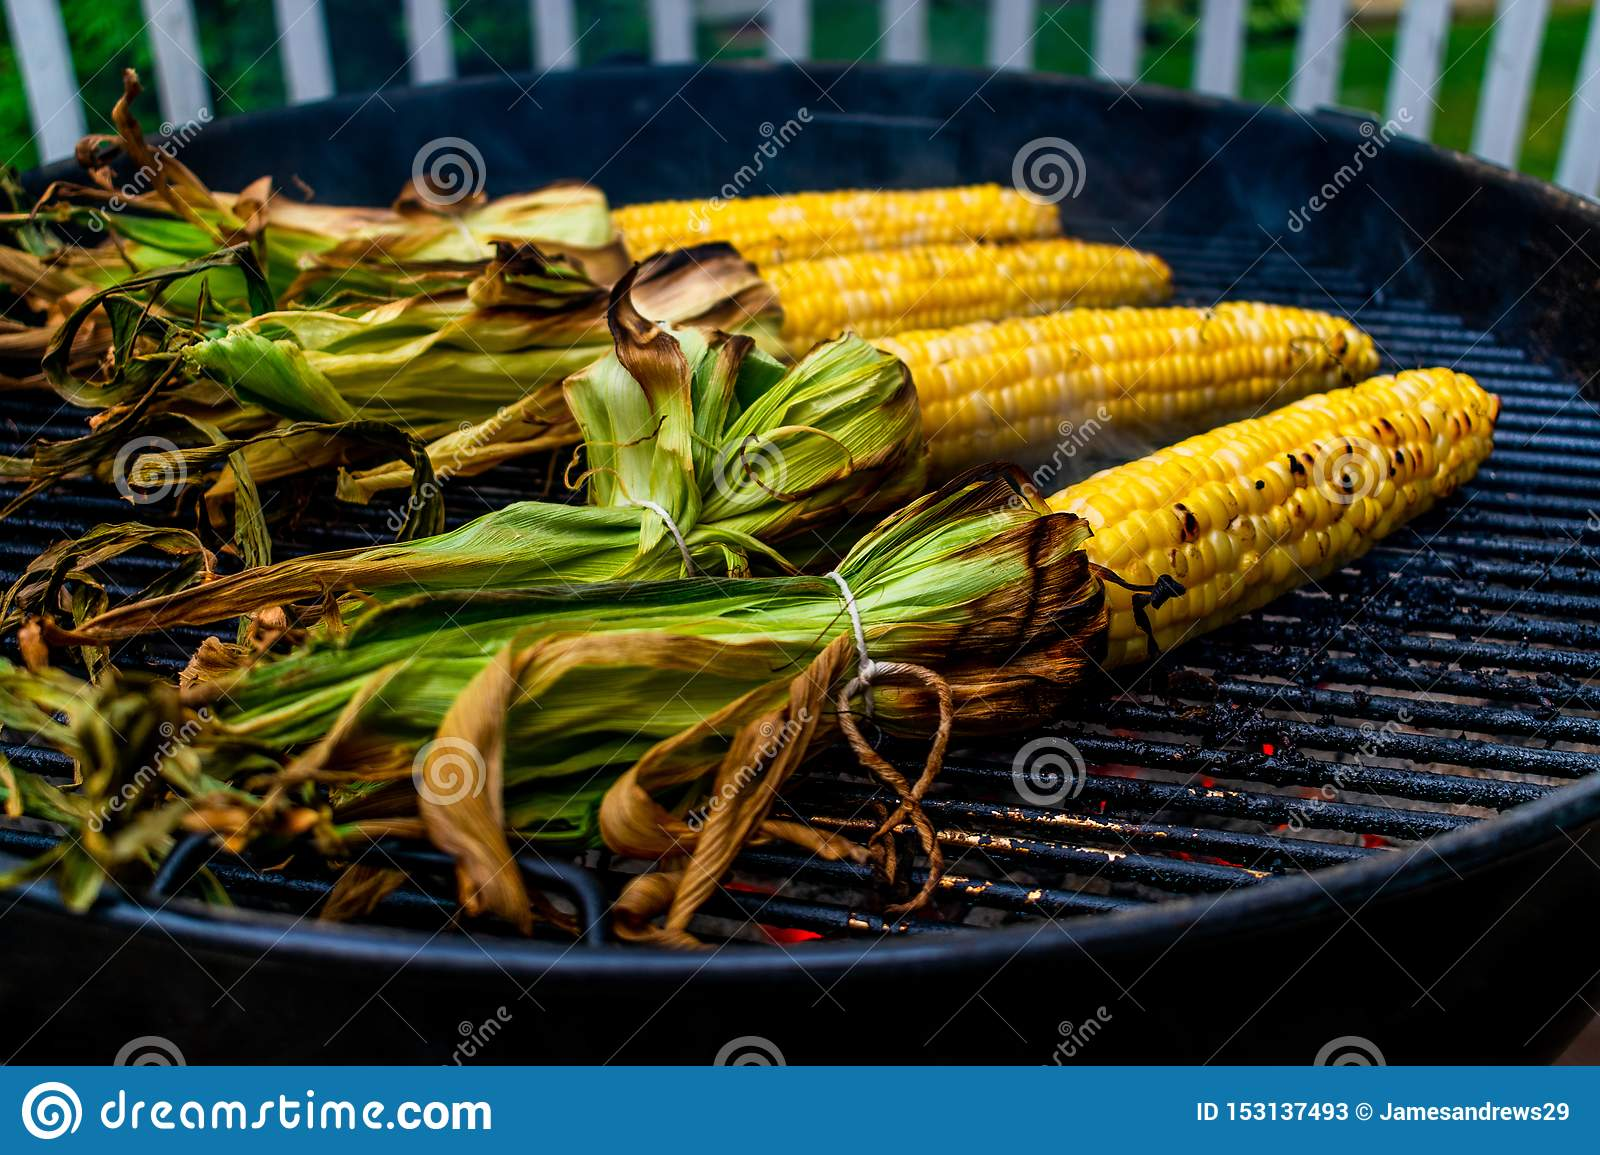 Corn on the cob cooking on a grill